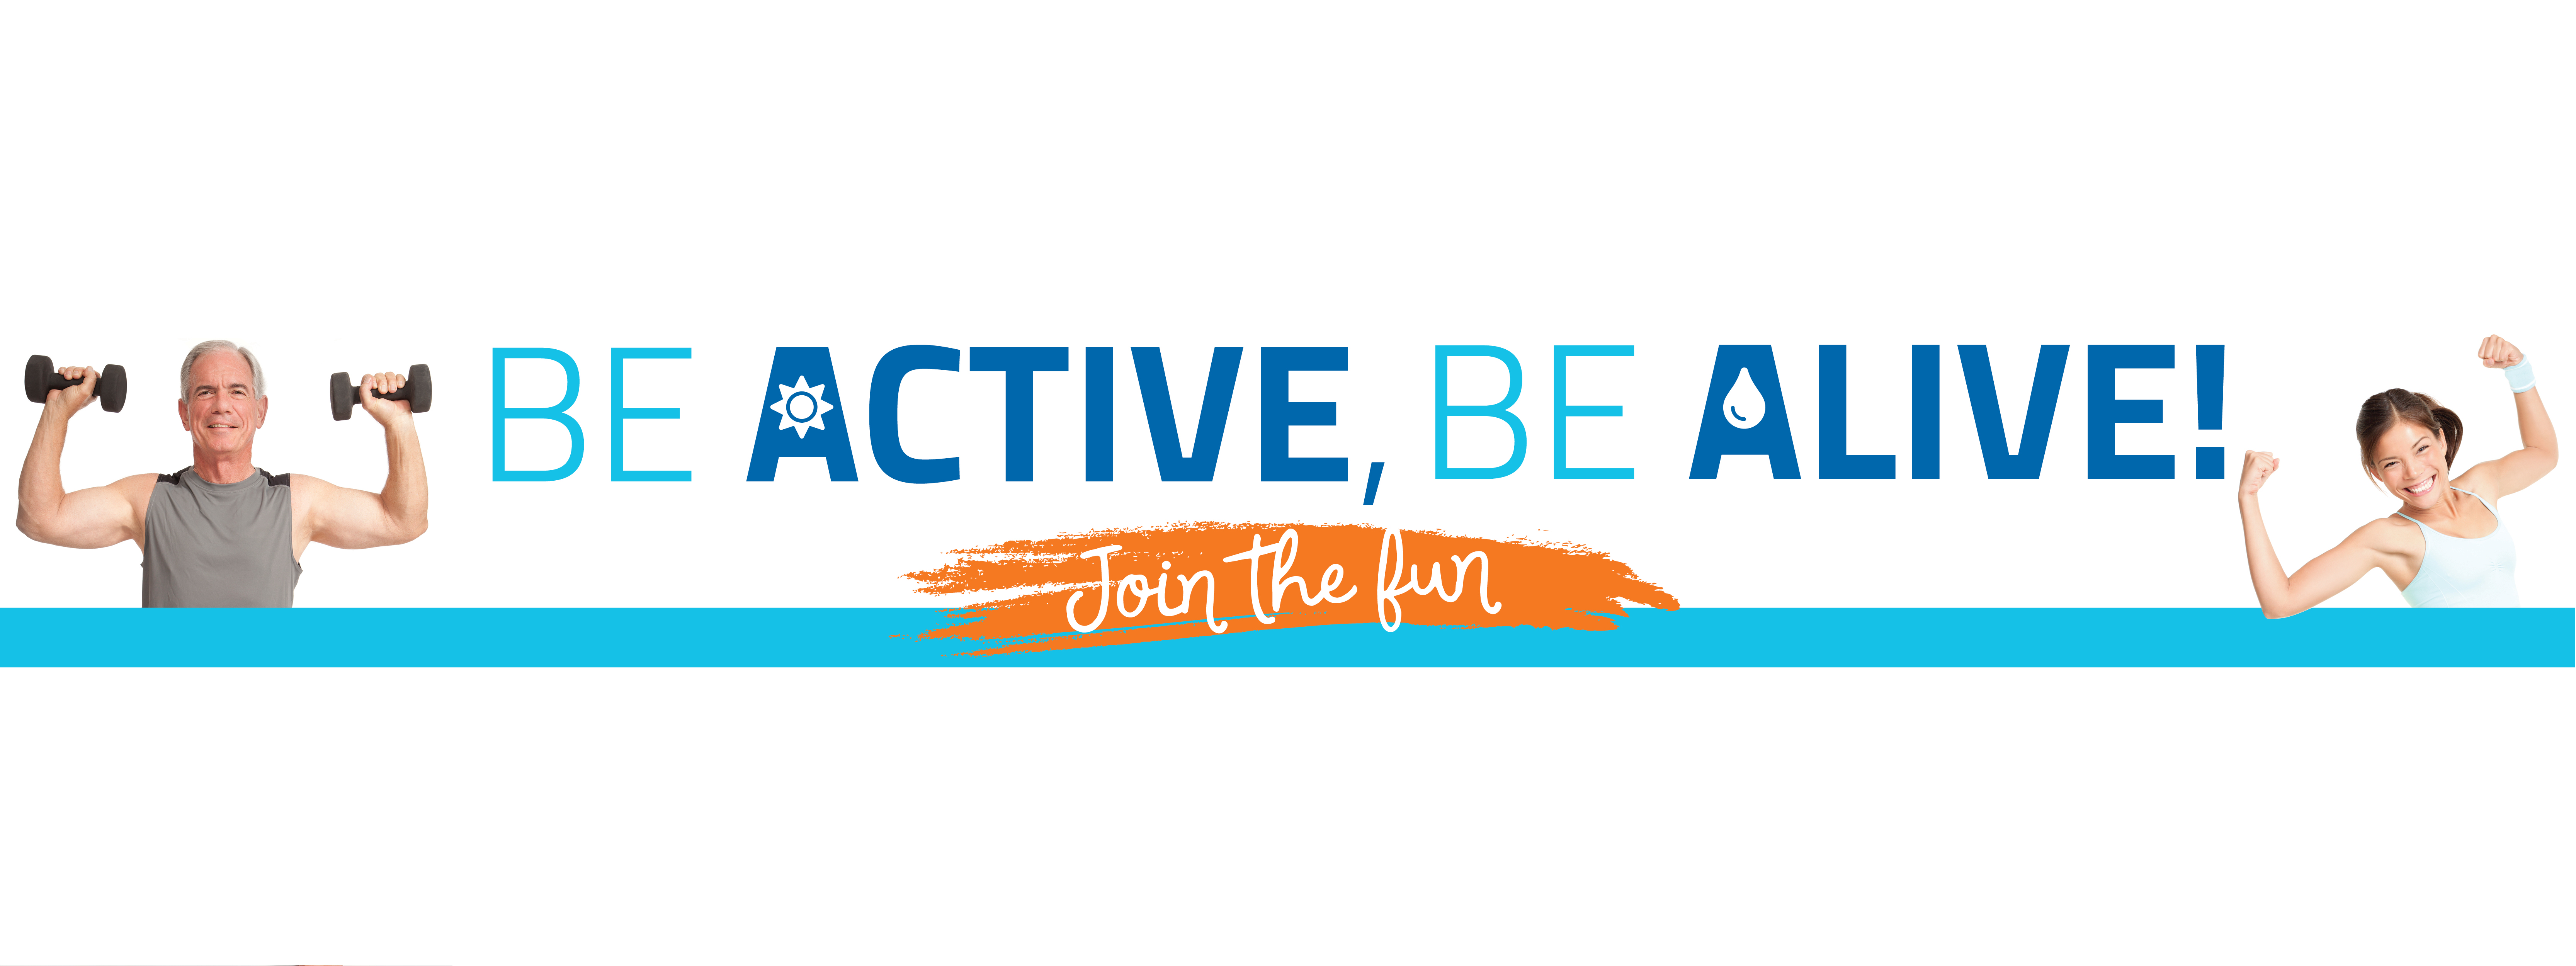 Be Active Be Alive free fitness classes program